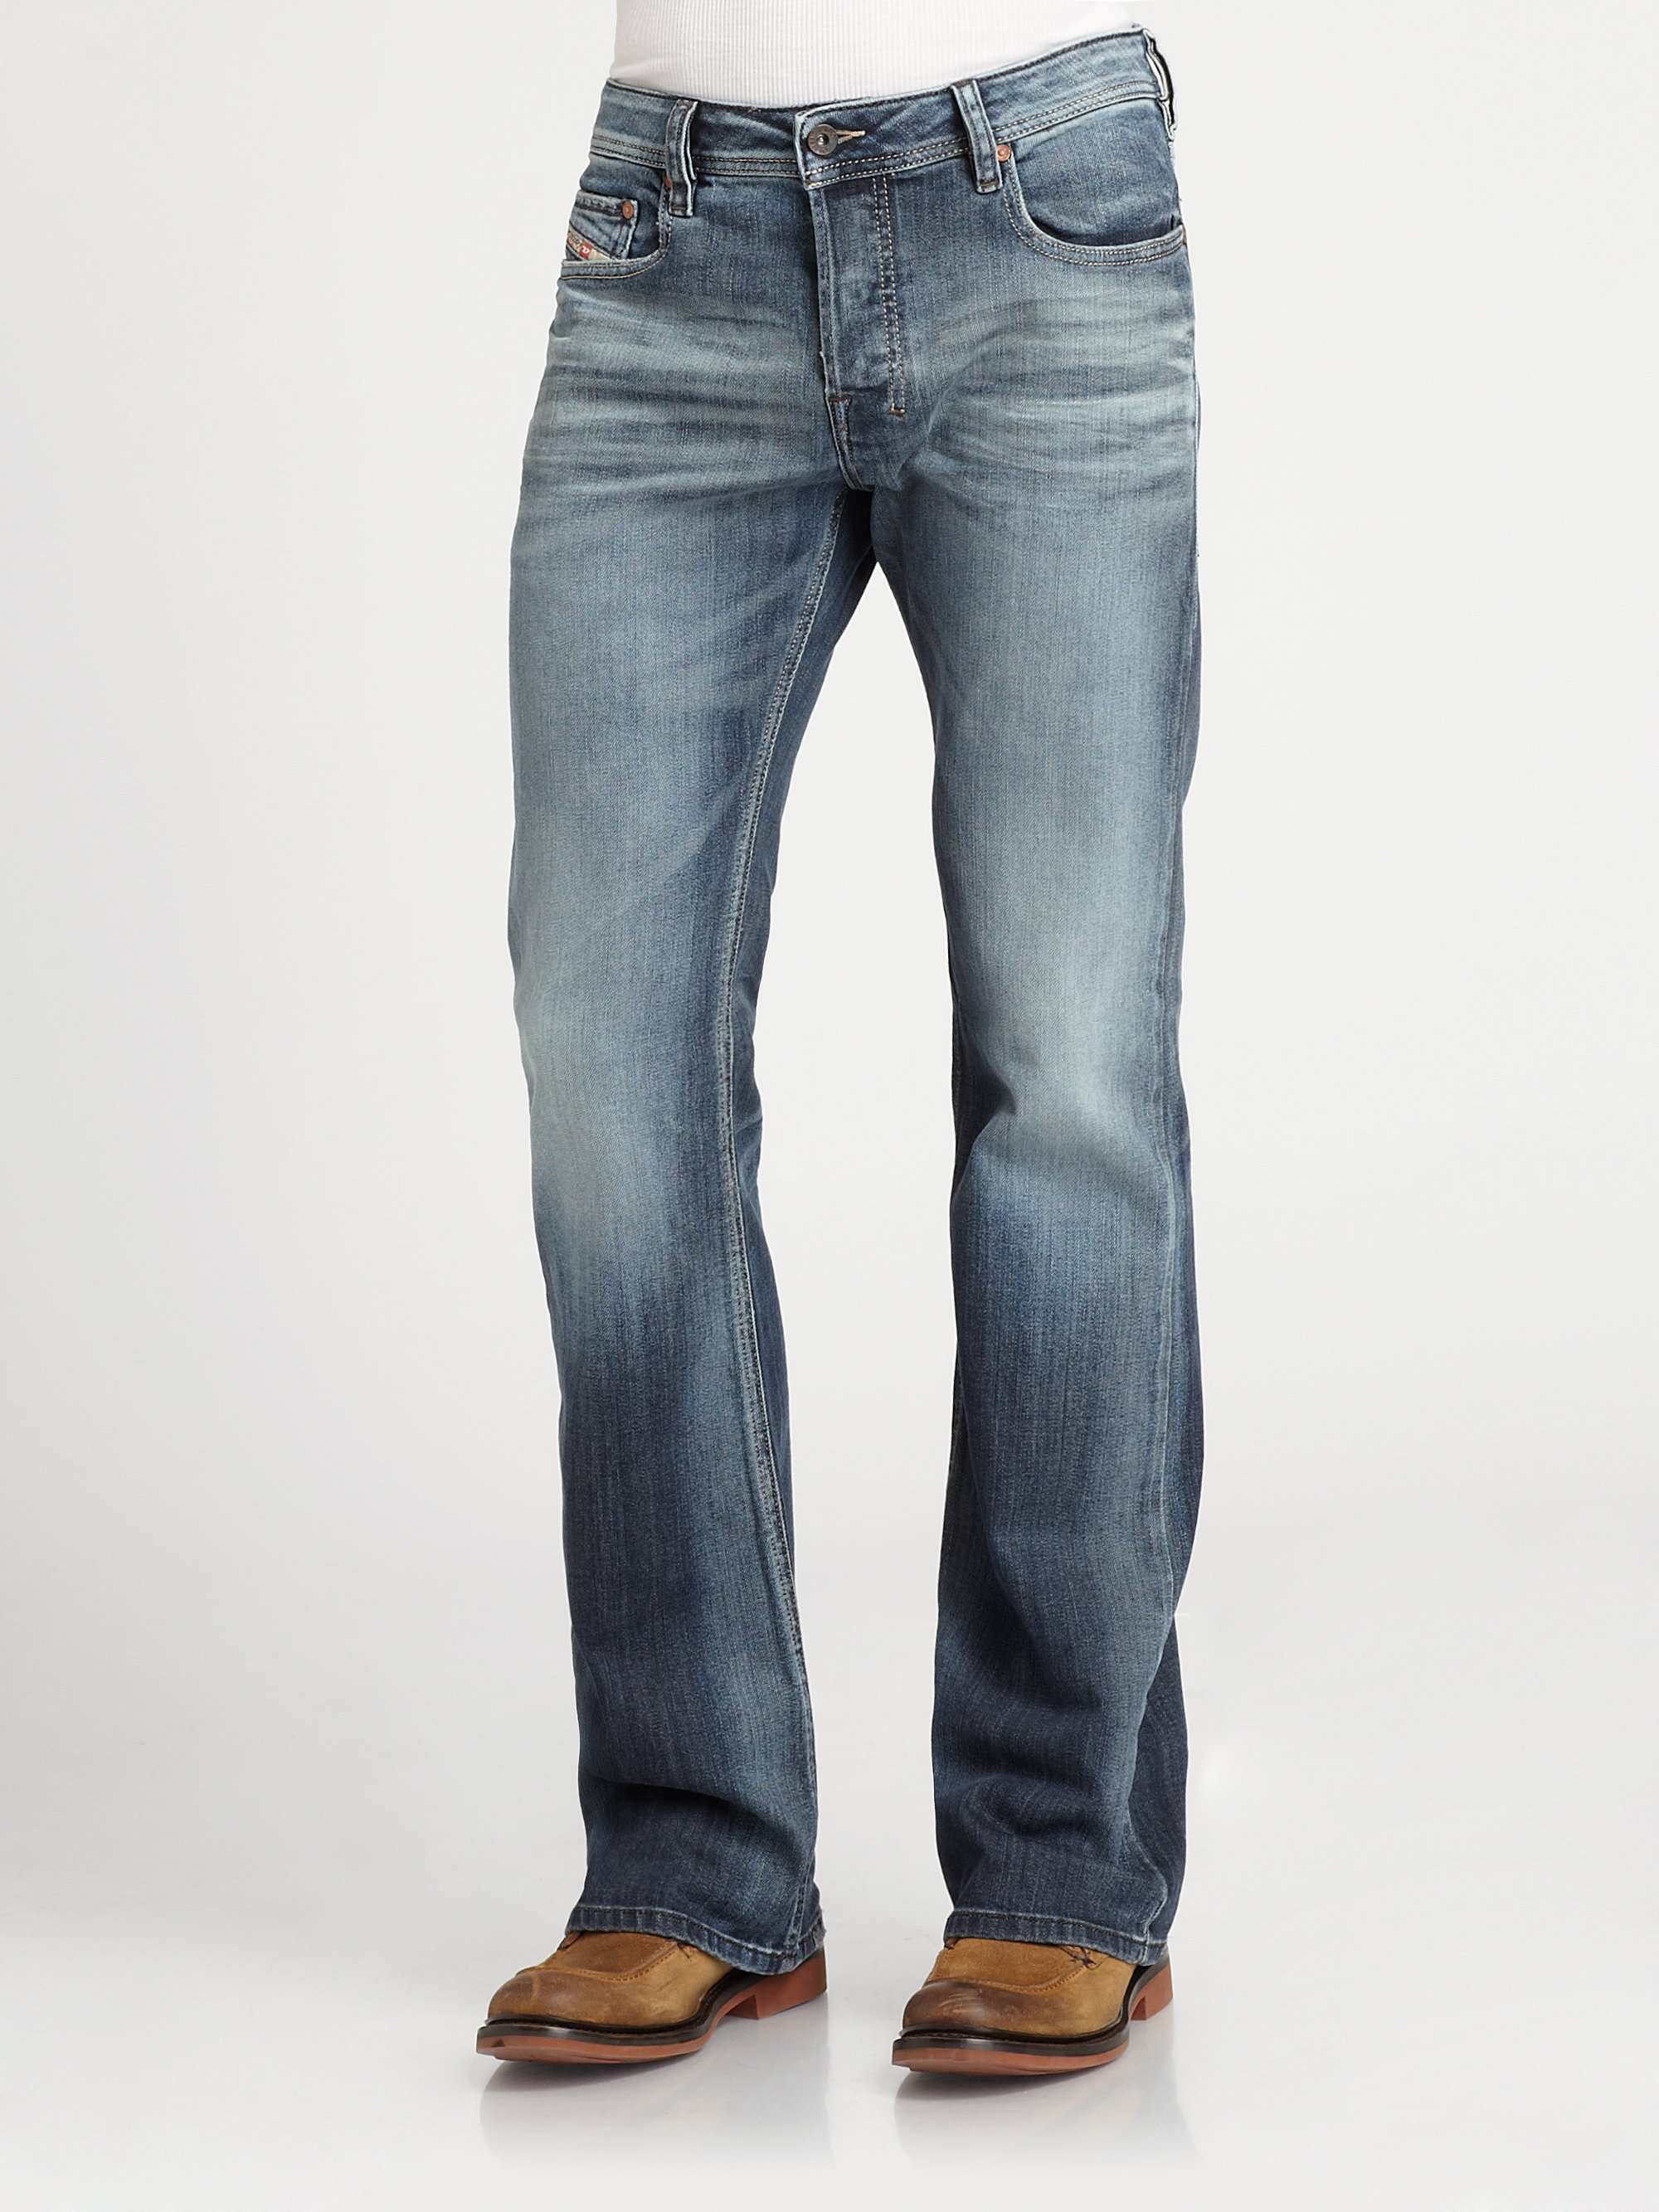 Lyst - Diesel Zathan Bootcut Jeans in Blue for Men